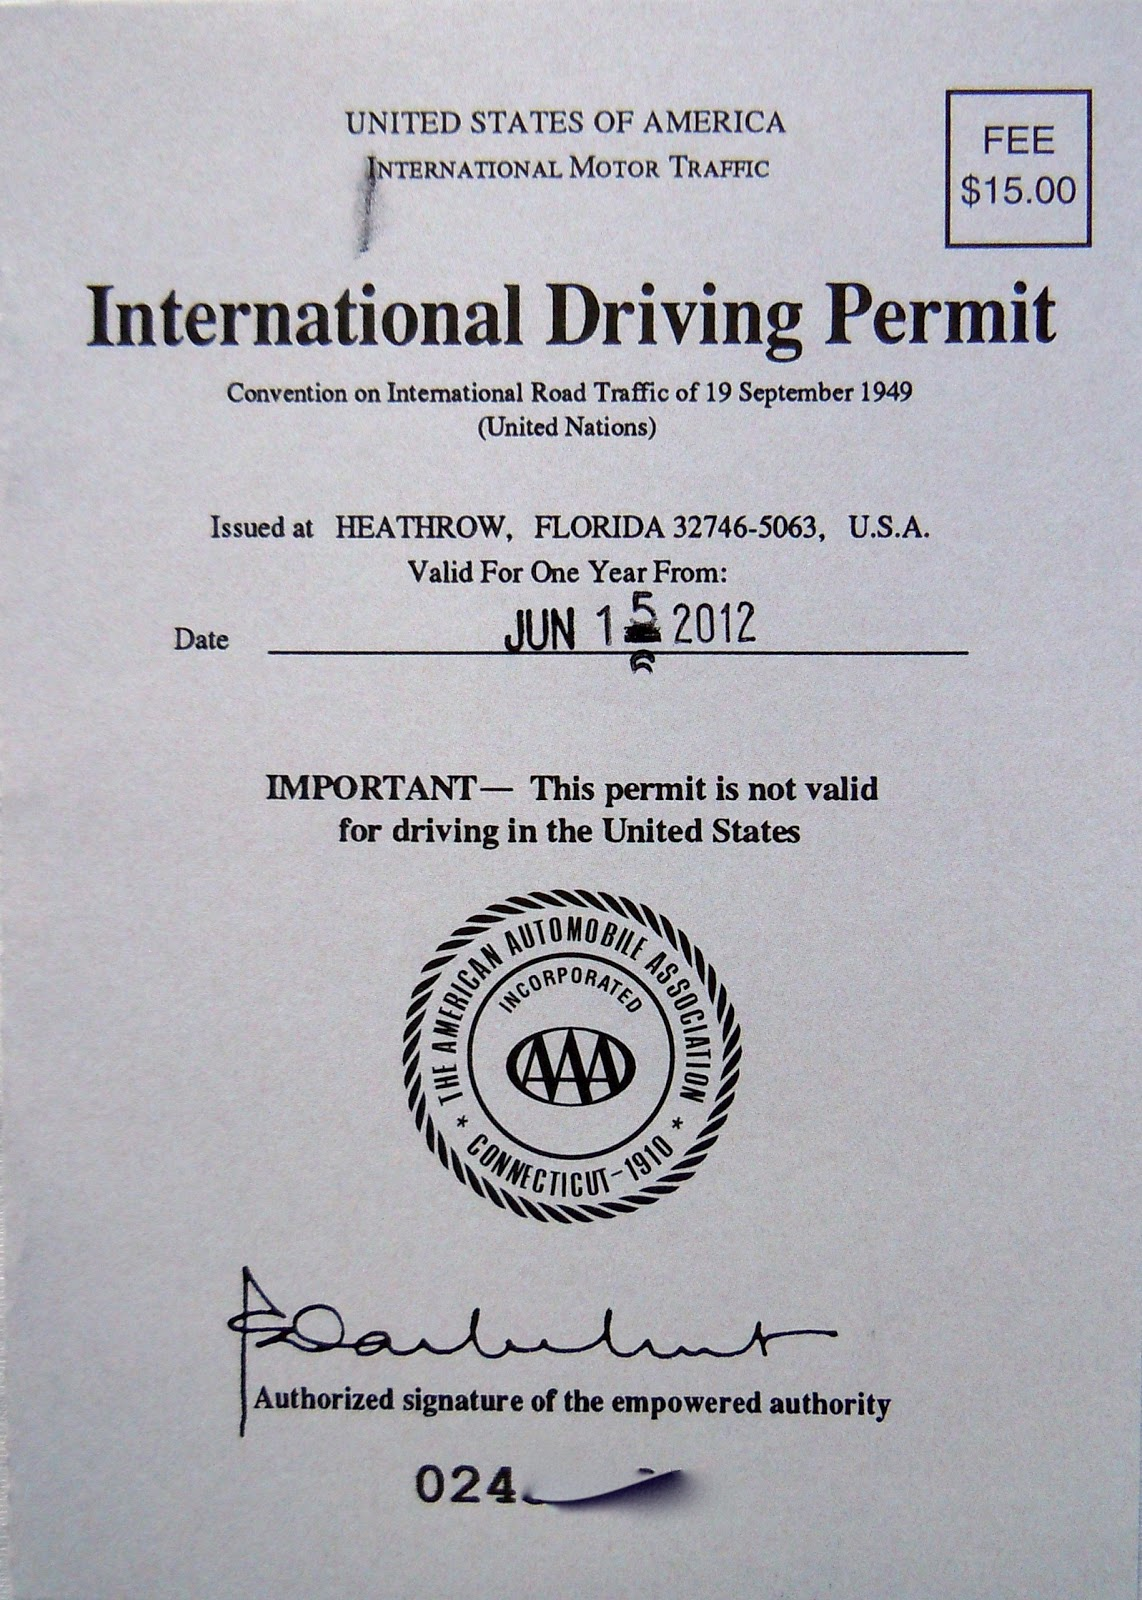 International Driving Permitspic